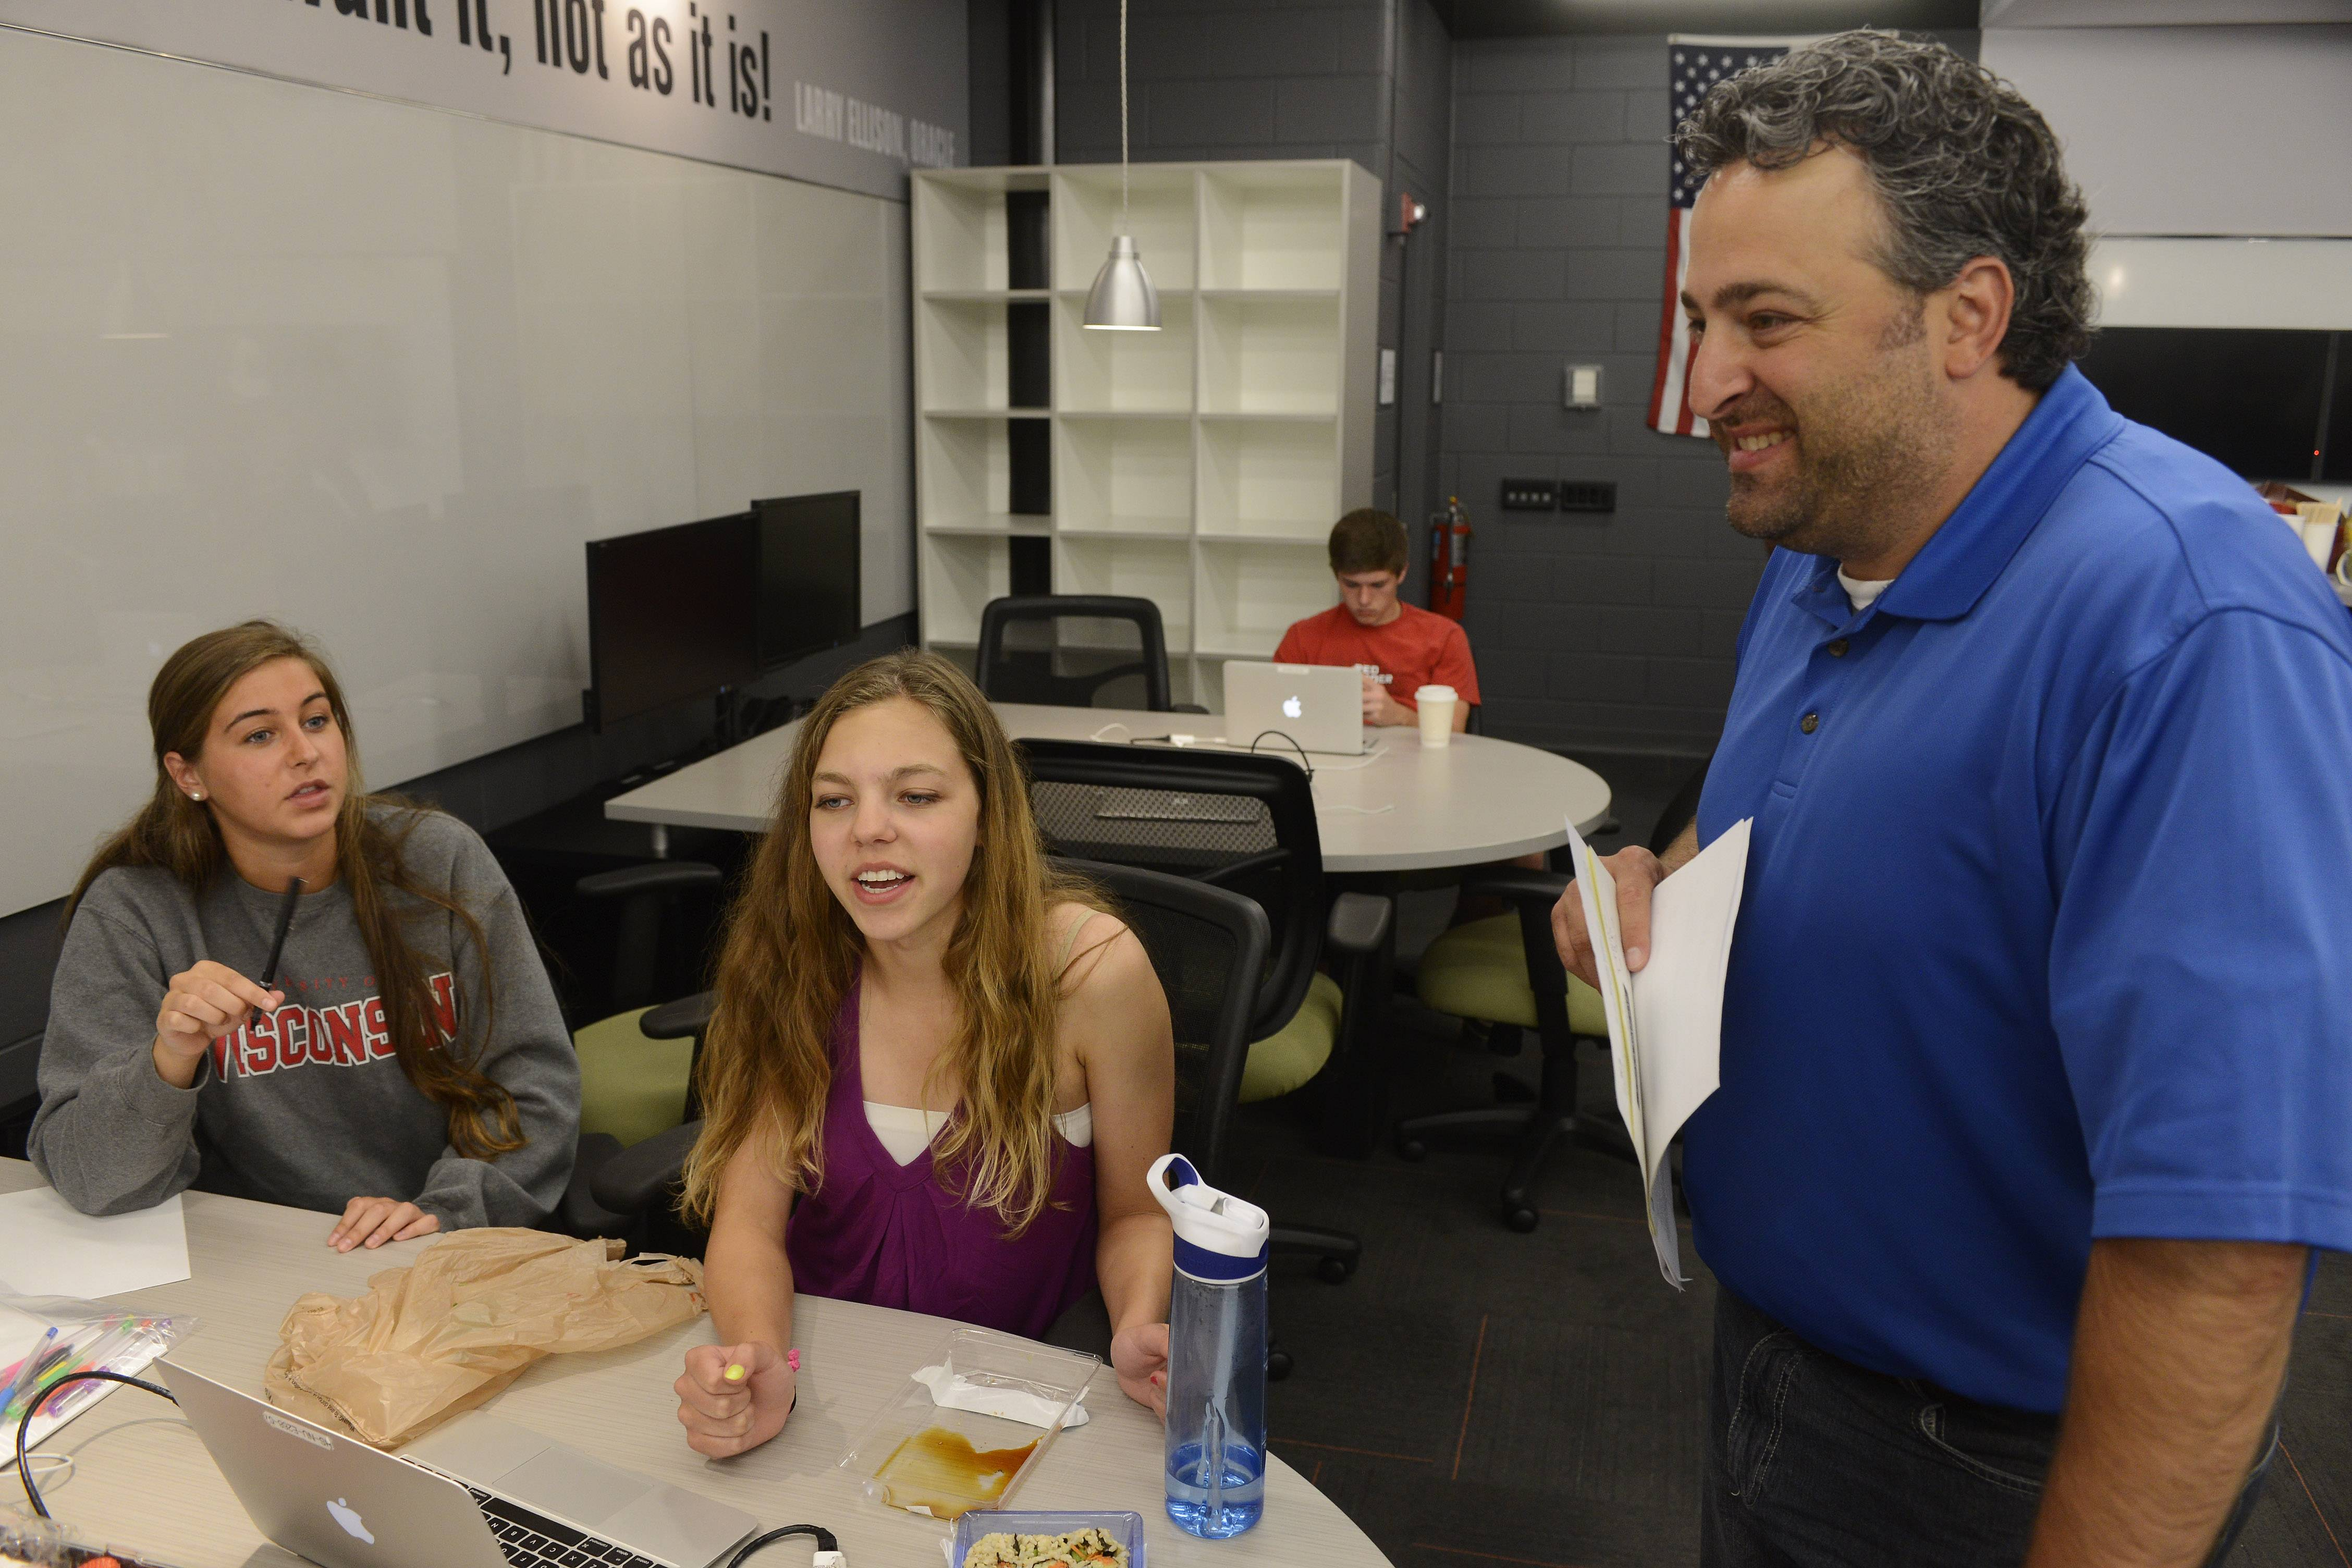 Students Rachel Morin, left, and Sarah Parsons talk about their company, The Study Project, with teacher Hagop Soulakian during a gathering of the Business Incubator class at Barrington High School. The Study Project aims to provide an online meeting place for students to collaborate on school work.